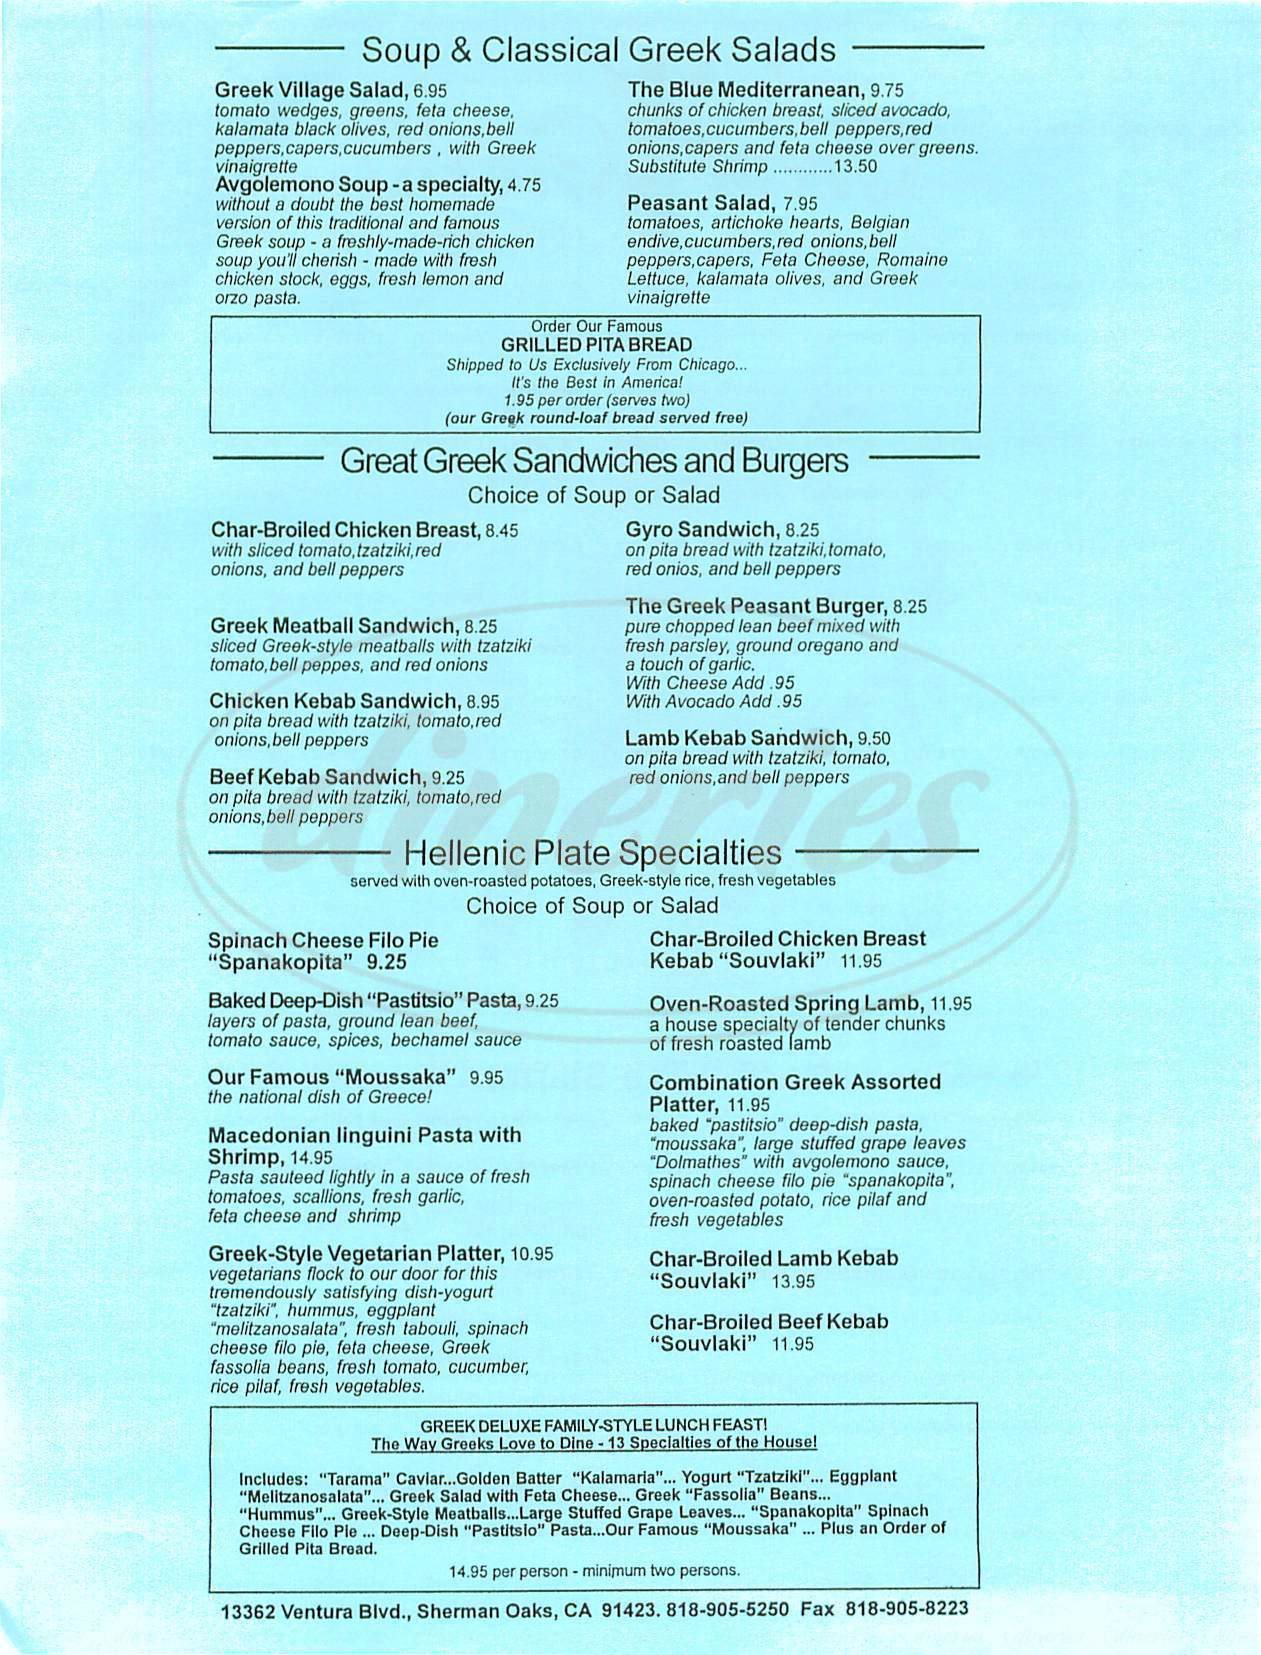 The Great Greek Restaurant Menu - Sherman Oaks - Dineries